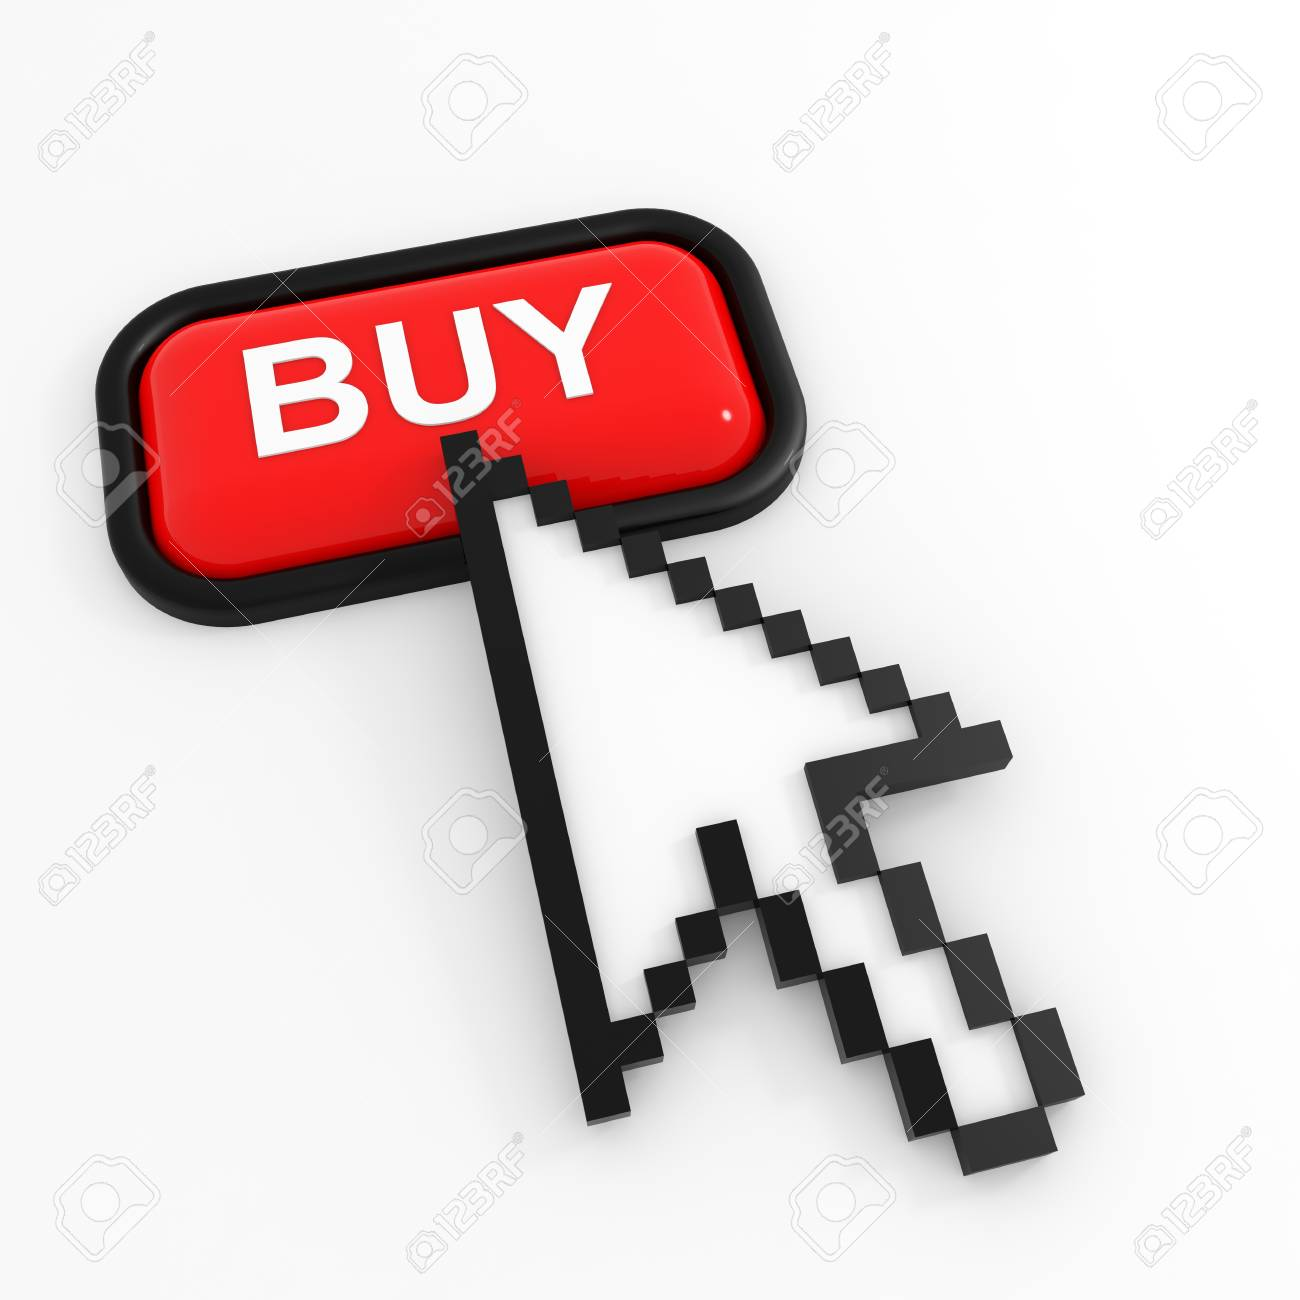 Red button BUY with arrow cursor. Computer generated image. Stock Photo - 11818155